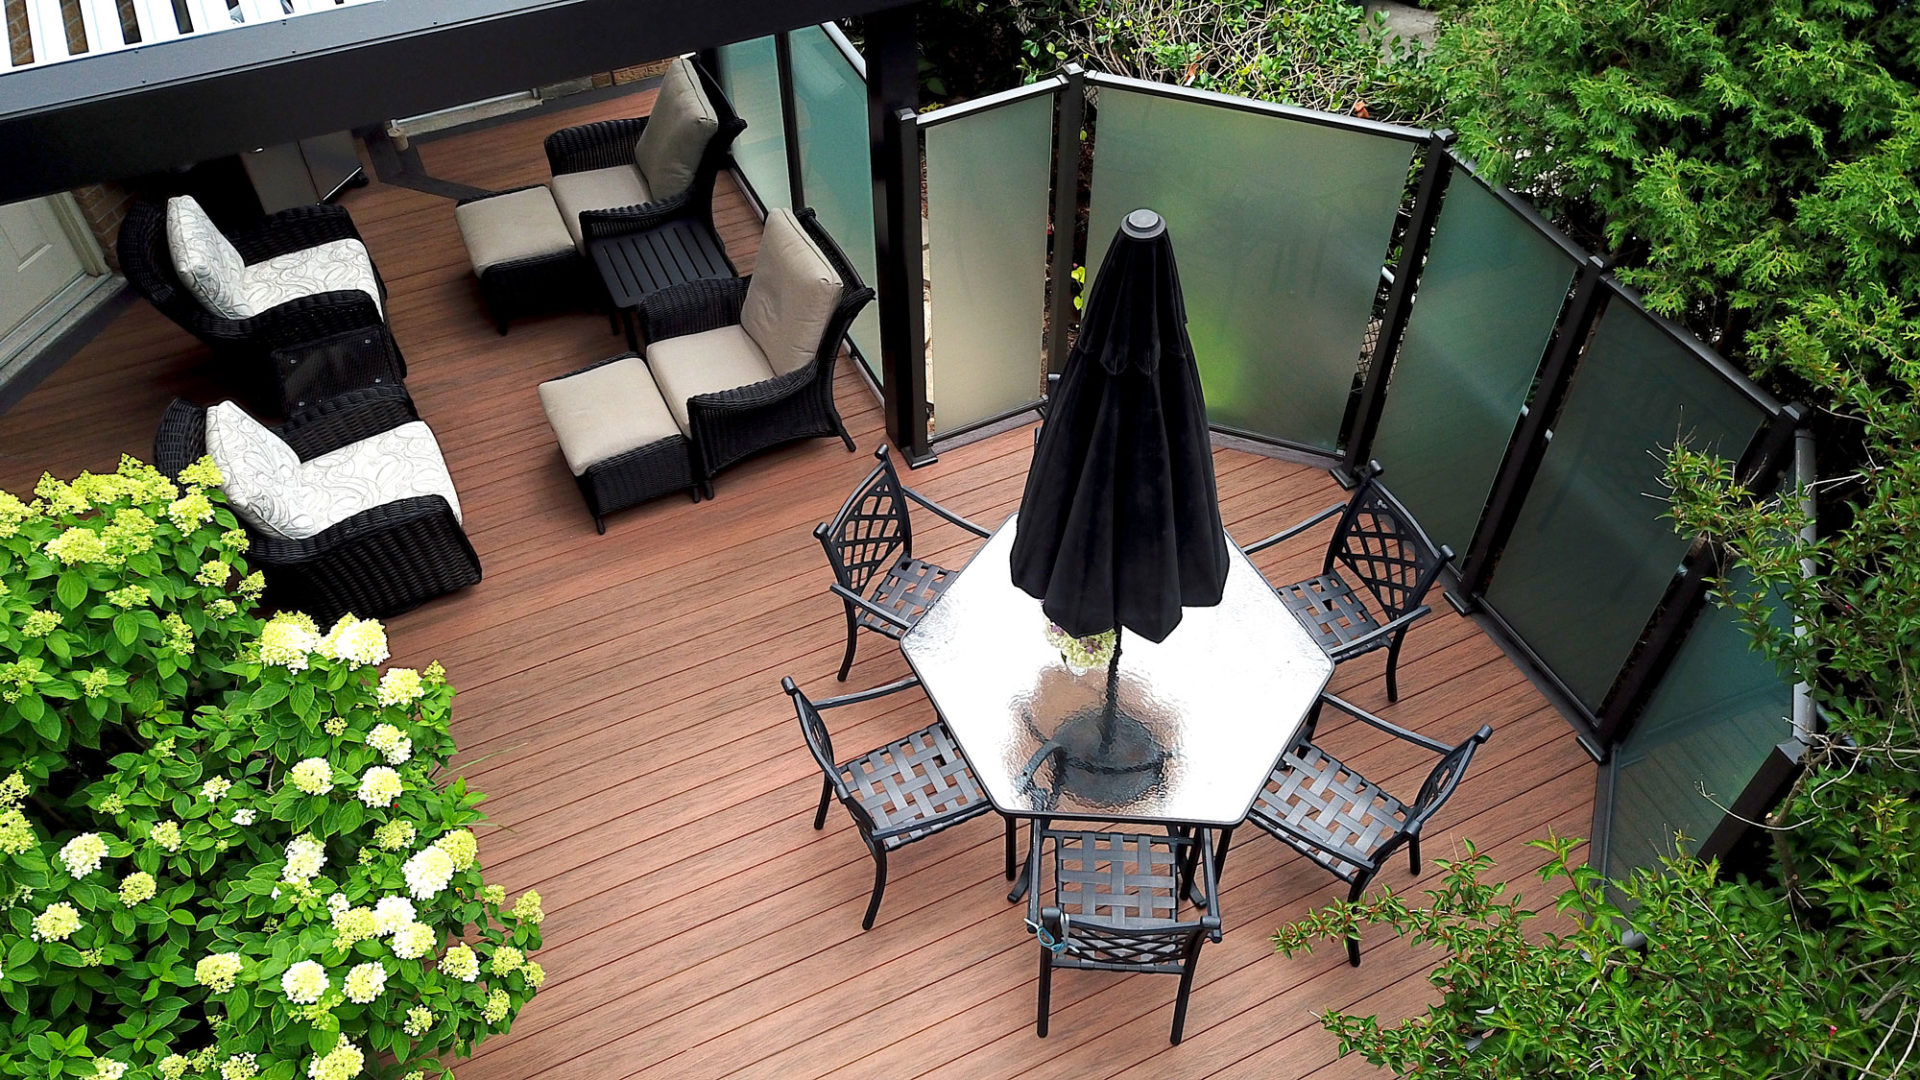 Tiva Deck Backyard PVC Deck Toronto